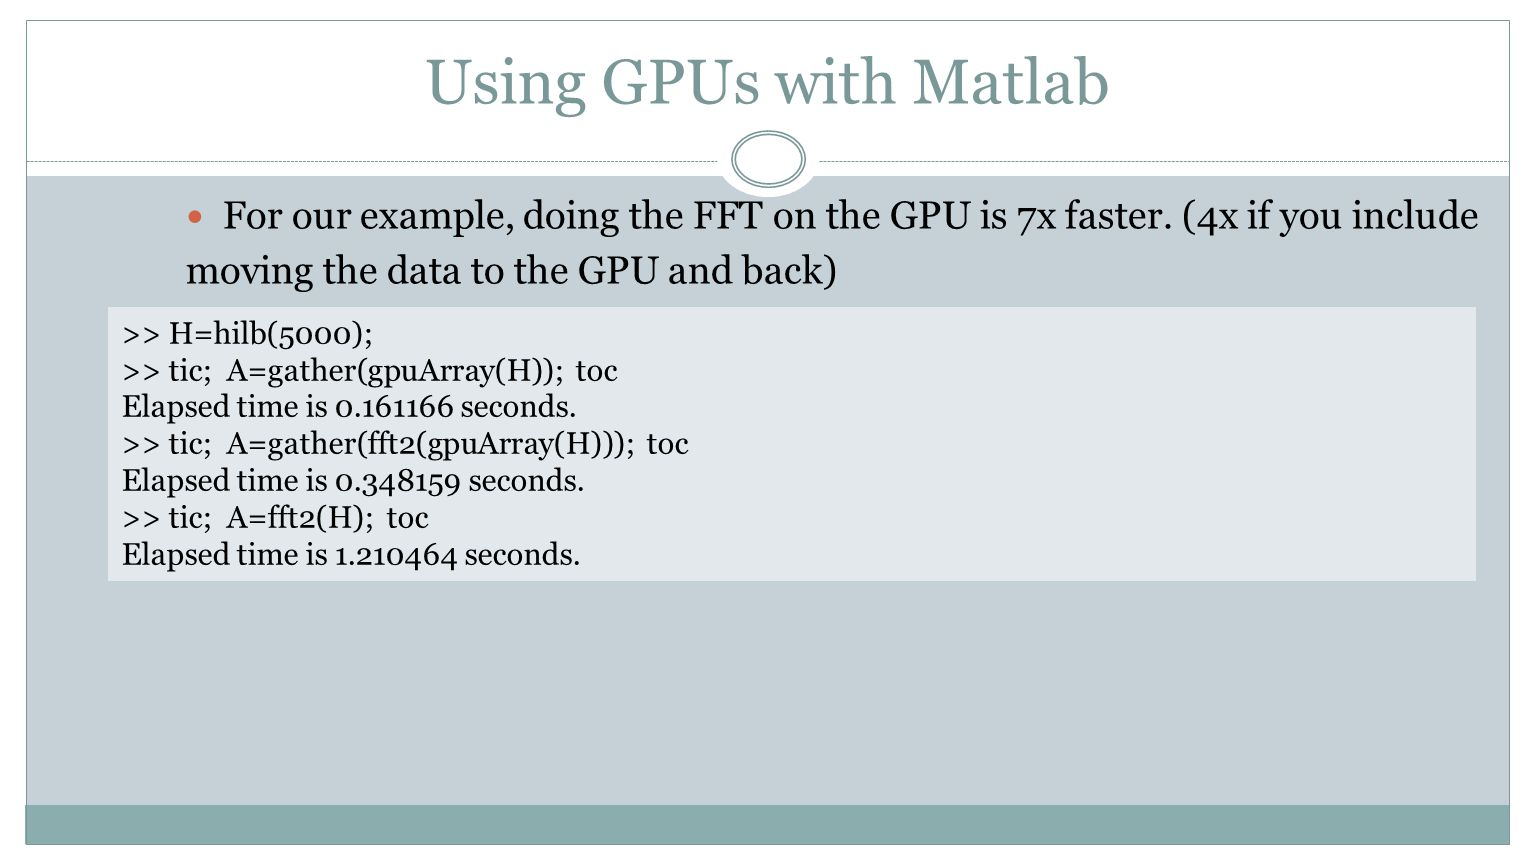 Using GPUs with Matlab For our example, doing the FFT on the GPU is 7x faster. (4x if you include moving the data to the GPU and back) >> H=hilb(5000)